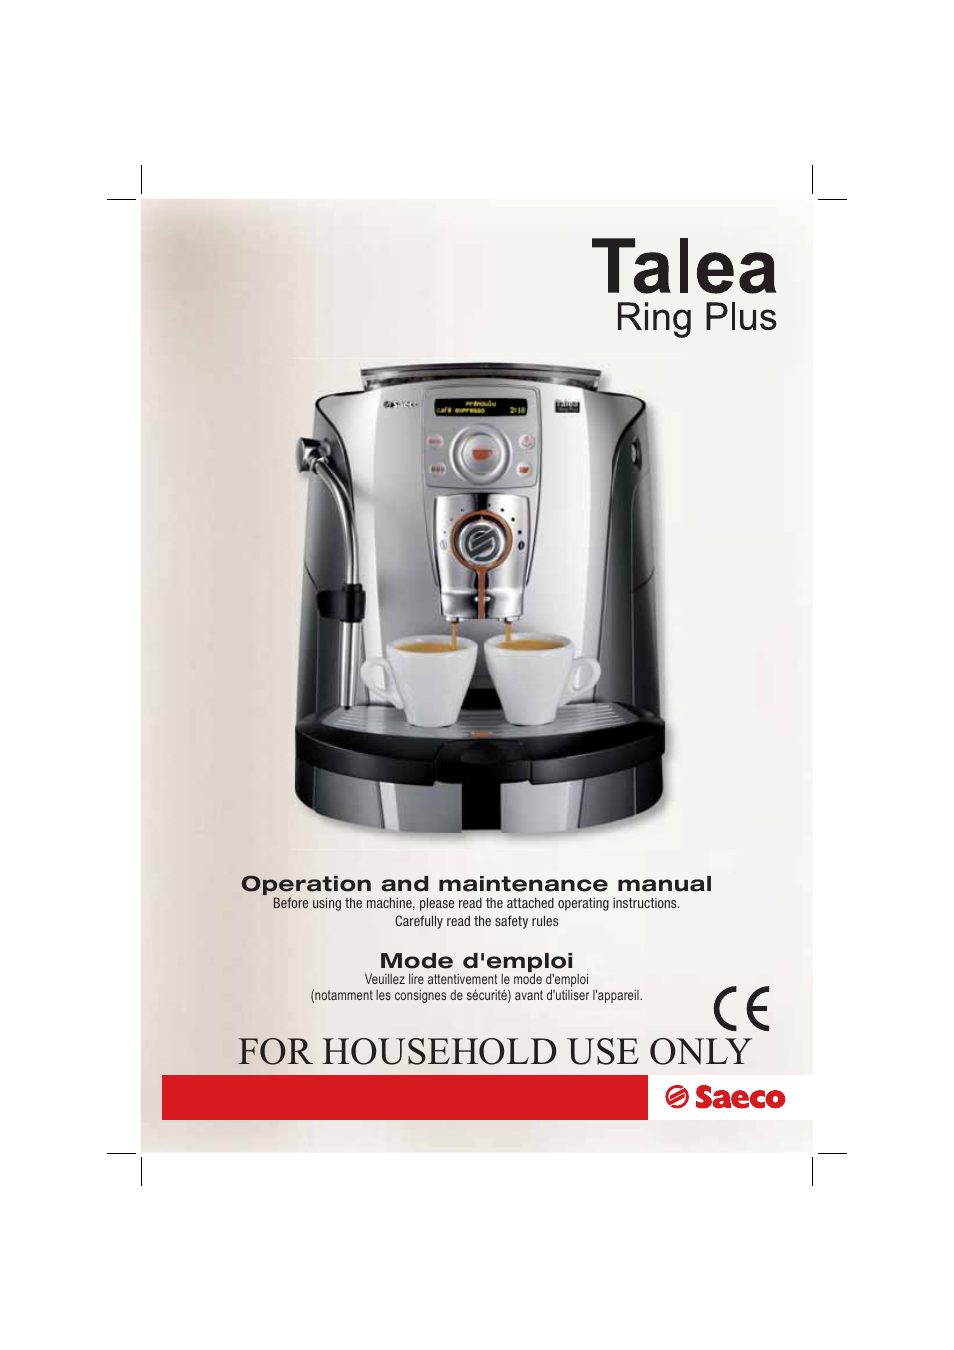 saeco talea ring plus manual